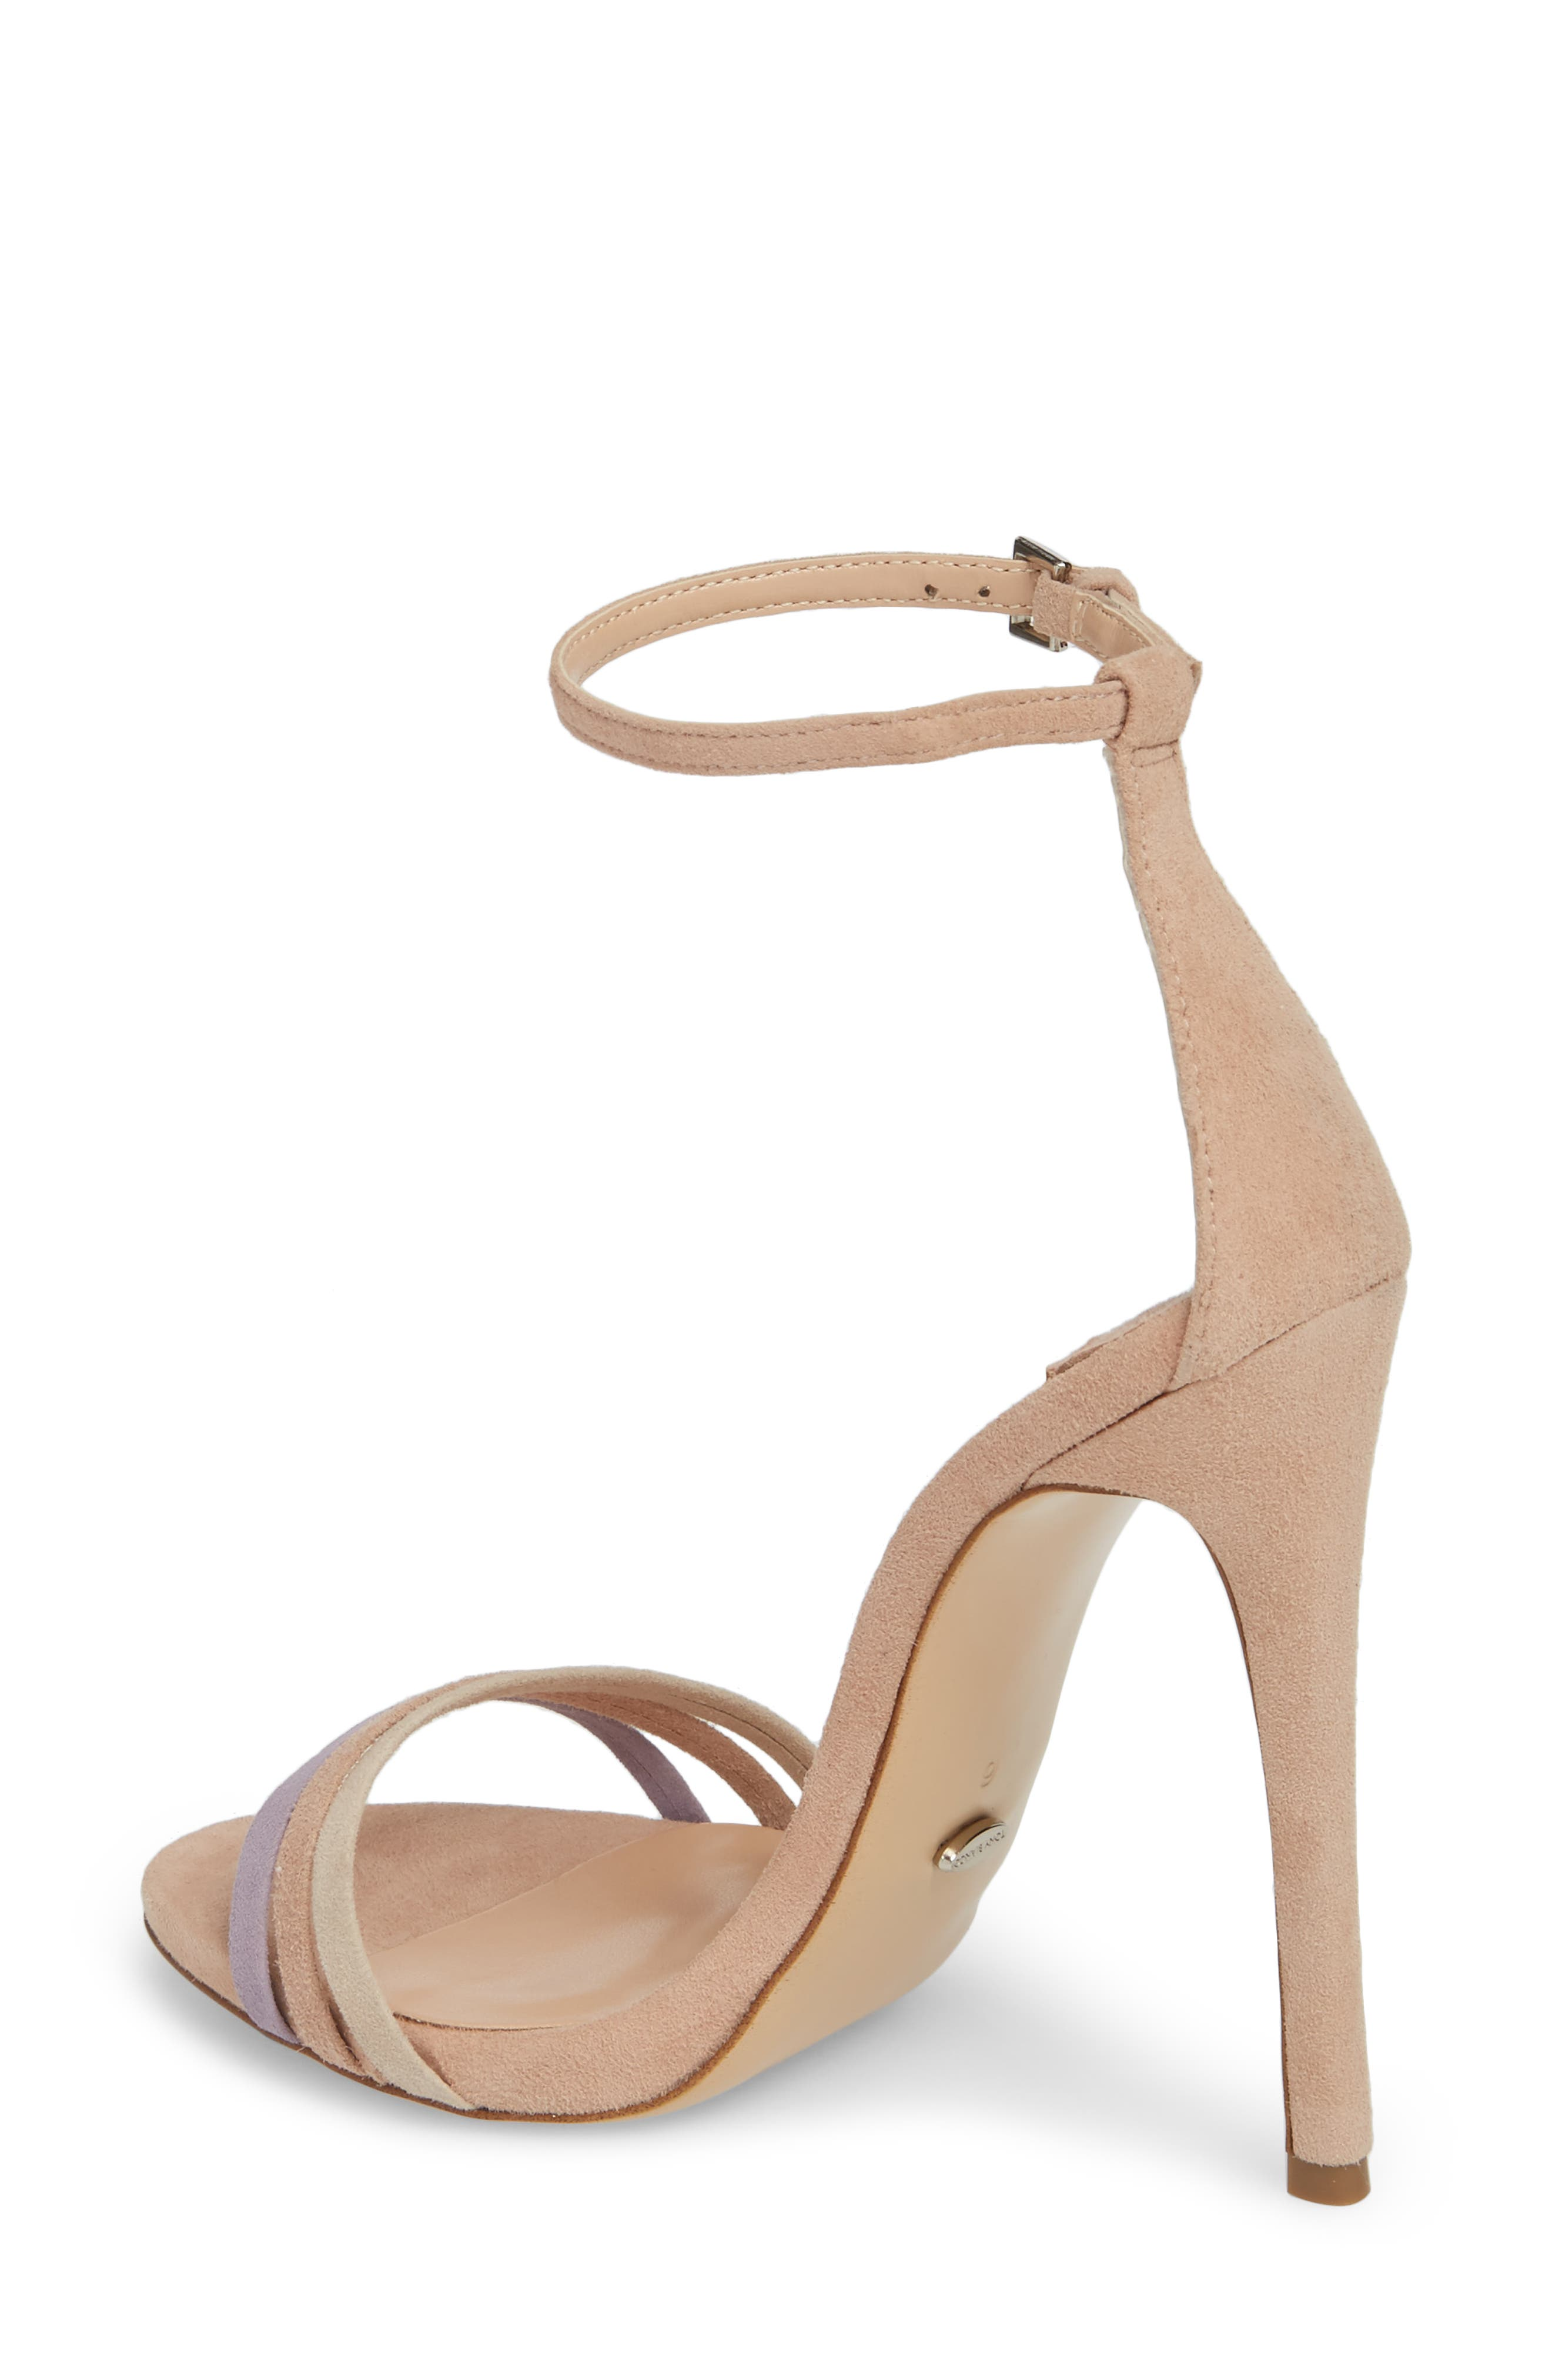 Aroma Strappy Sandal,                             Alternate thumbnail 2, color,                             Blush Suede